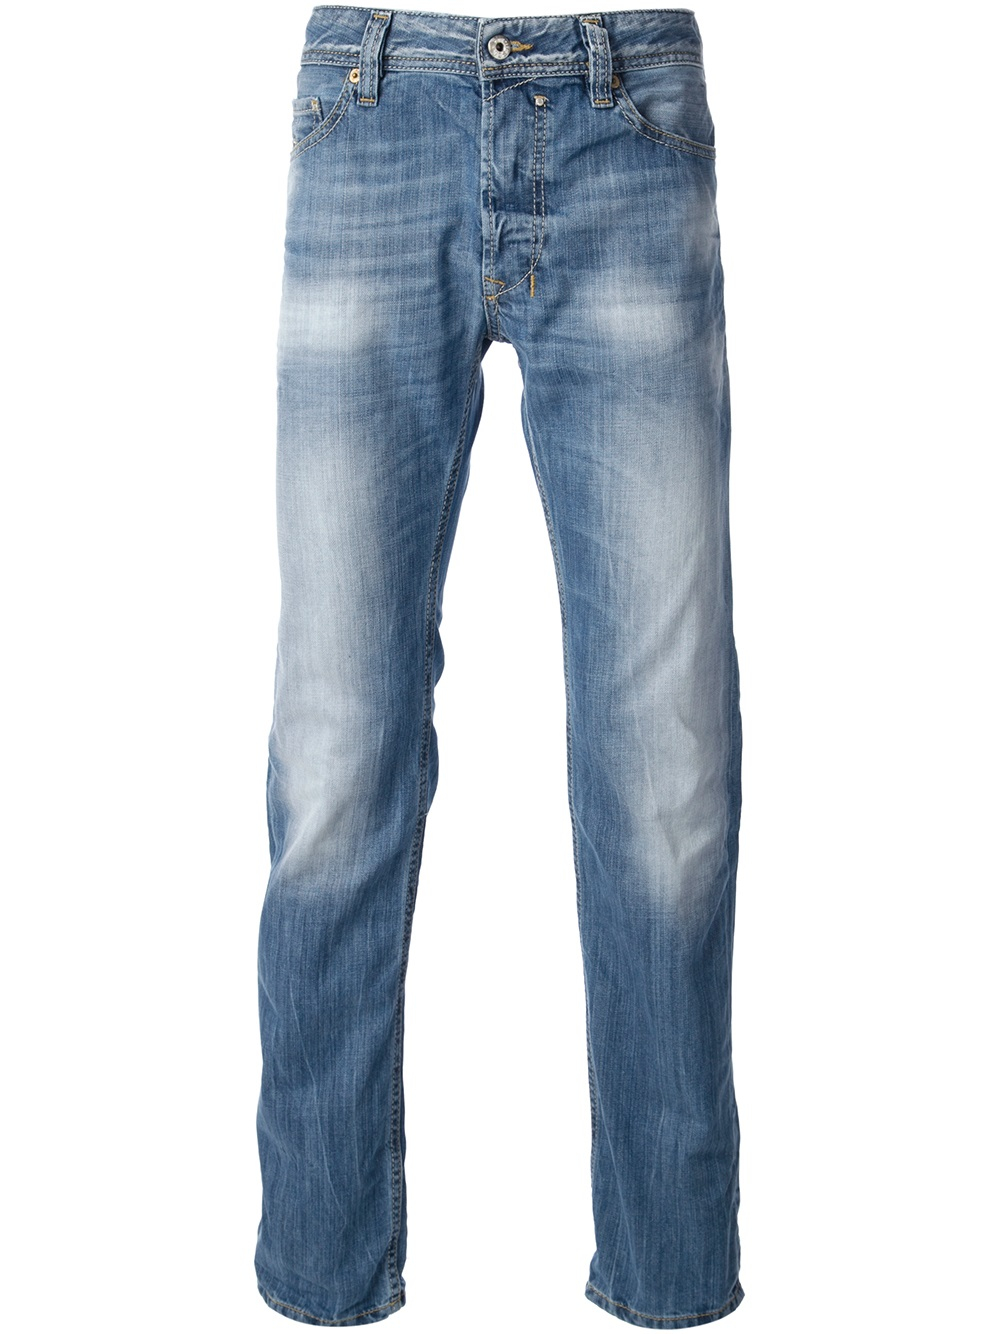 diesel stone washed jeans in blue for men lyst. Black Bedroom Furniture Sets. Home Design Ideas